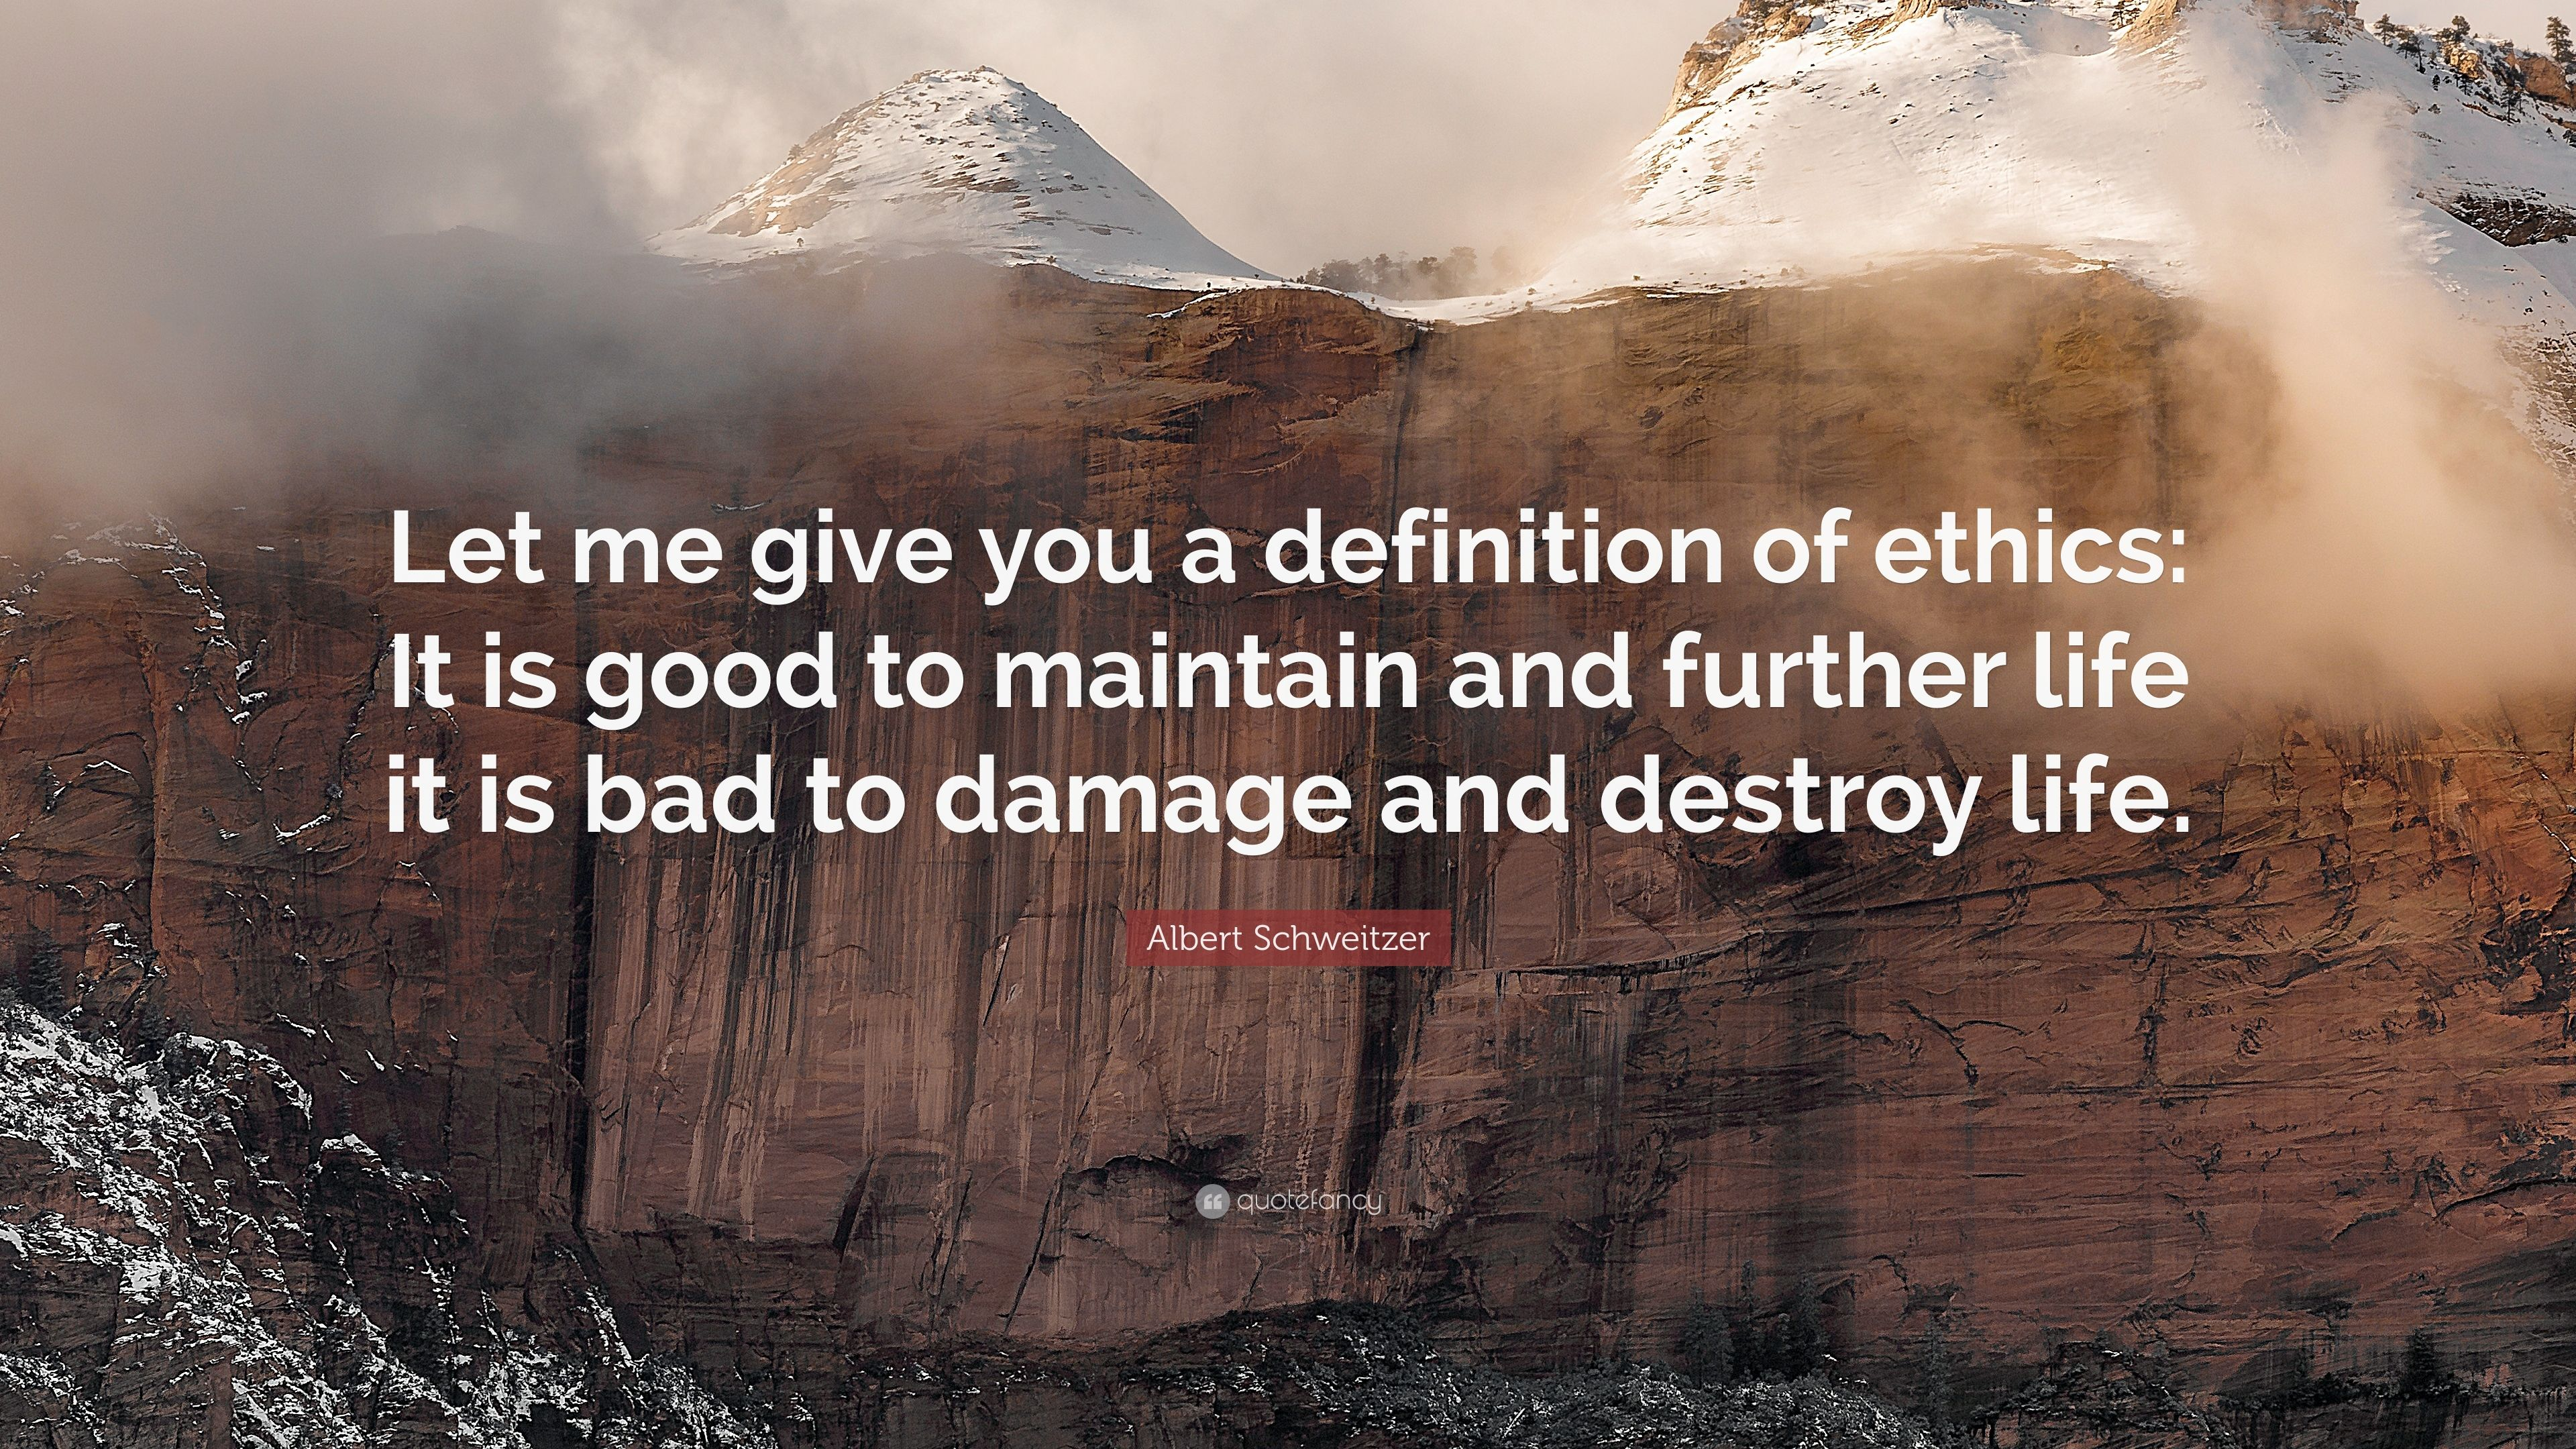 Albert Schweitzer Quote: U201cLet Me Give You A Definition Of Ethics: It Is